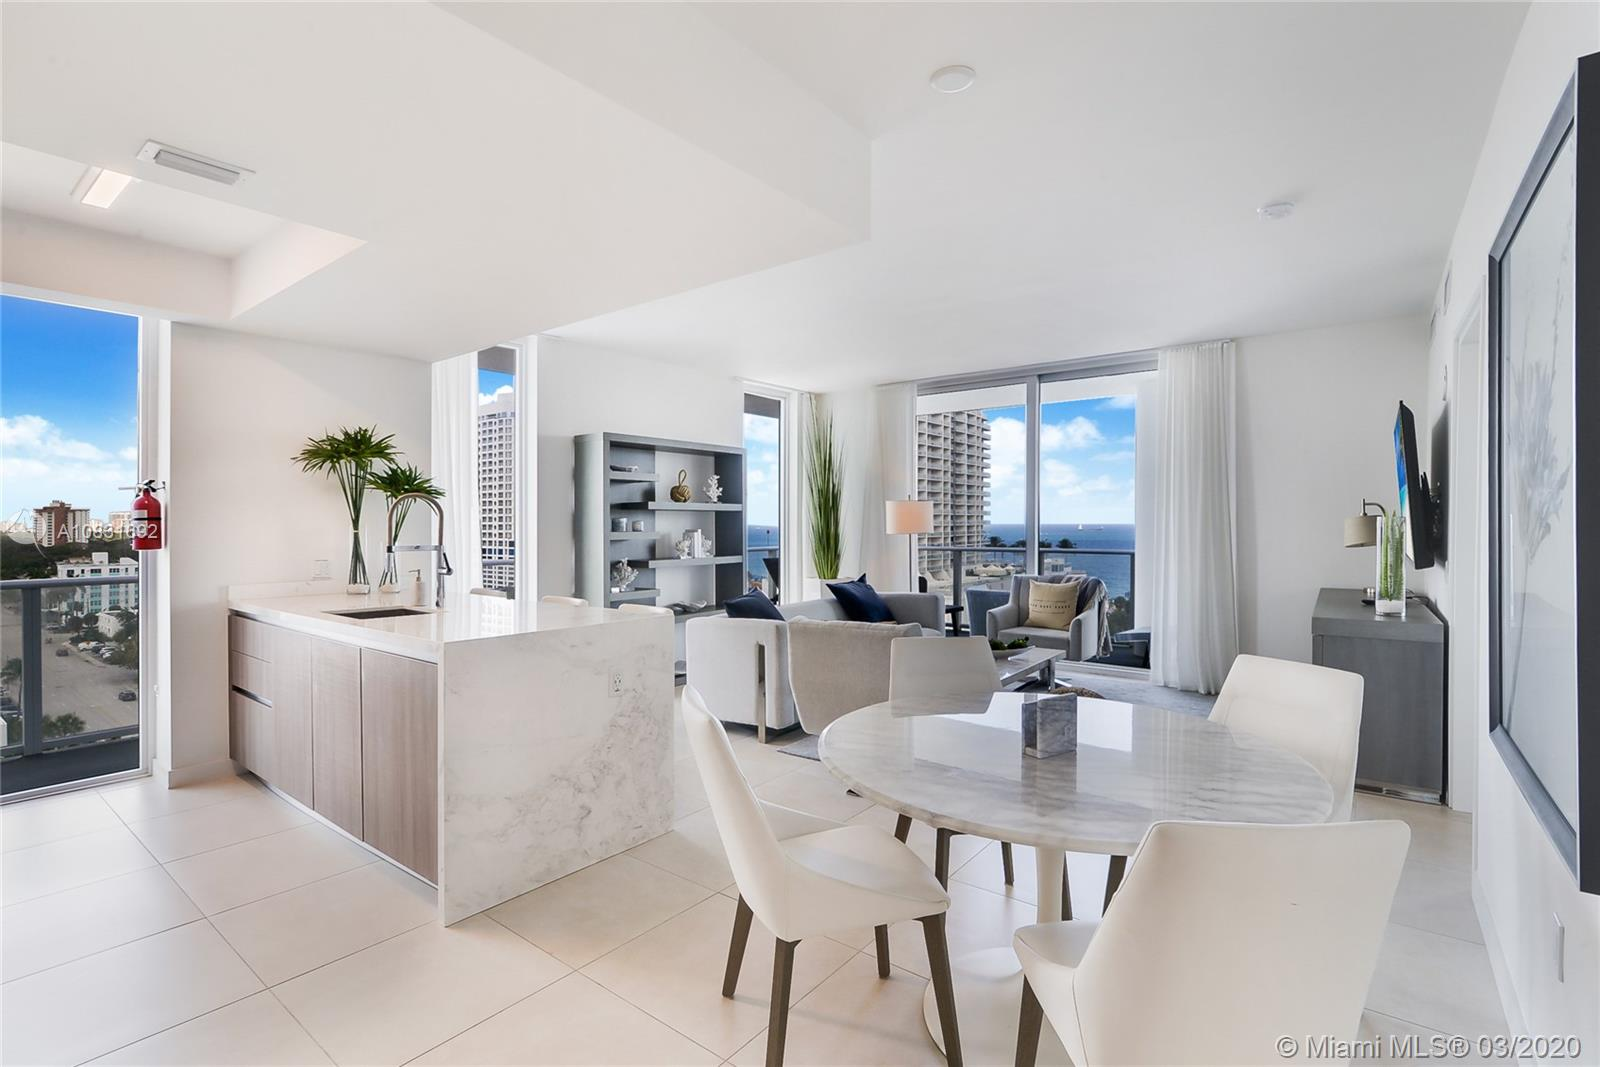 Welcome to this beautiful, sun-filled corner unit, located on the lower penthouse at Tiffany House/Gale. The unit boasts a split floor plan, 2 ensuite bedrooms and a spacious den, marble master bathroom with separate tub and shower, high end appliances, quartz countertops and floor to ceiling impact windows. The wrap around balcony offers beautiful Ocean and Intracoastal views.  This turnkey unit comes fully furnished by renowned designer Steven G and is completely move-in ready.  Occupy full time or part time and rent it when not in use as the building has no rental restrictions.  Convenient location just 1 block from world renowned Fort Lauderdale Beach, close to Las Olas Blvd, Ft Lauderdale Intl. Airport and Port Everglades make this a highly sought after destination.